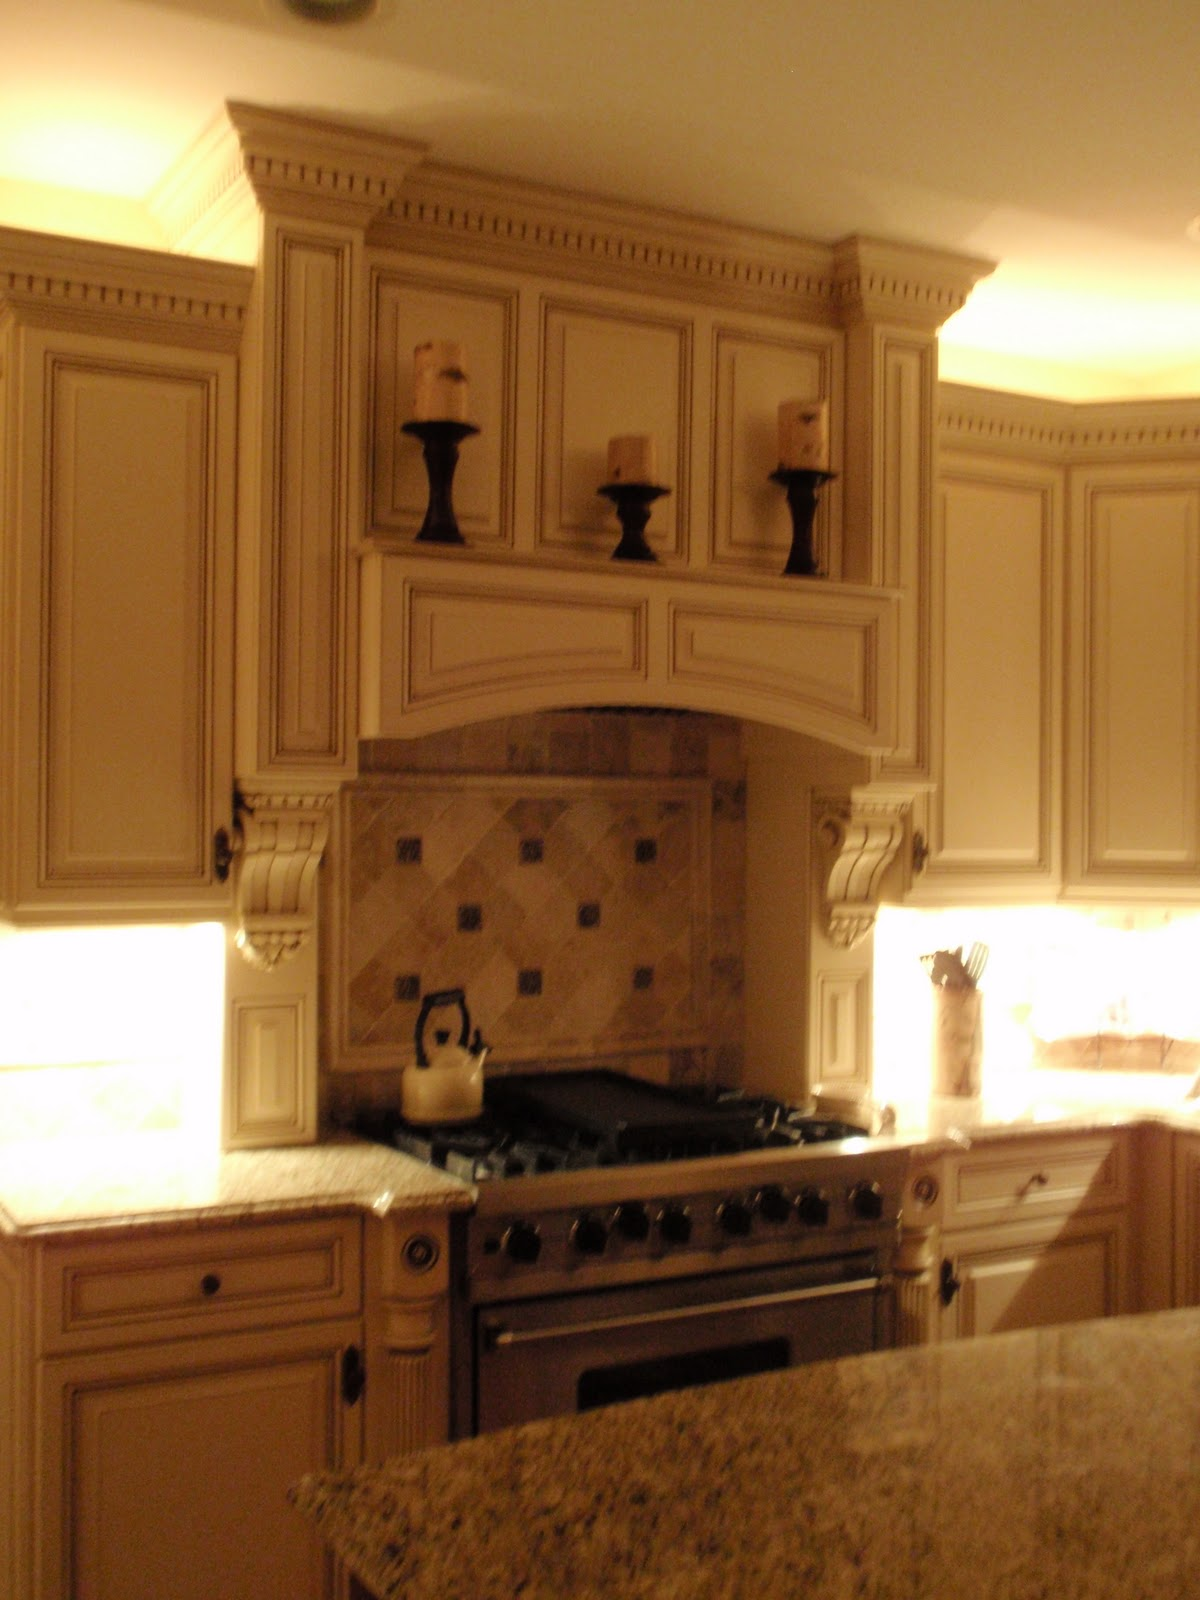 DIY by Design Tips When Remodeling a Kitchen